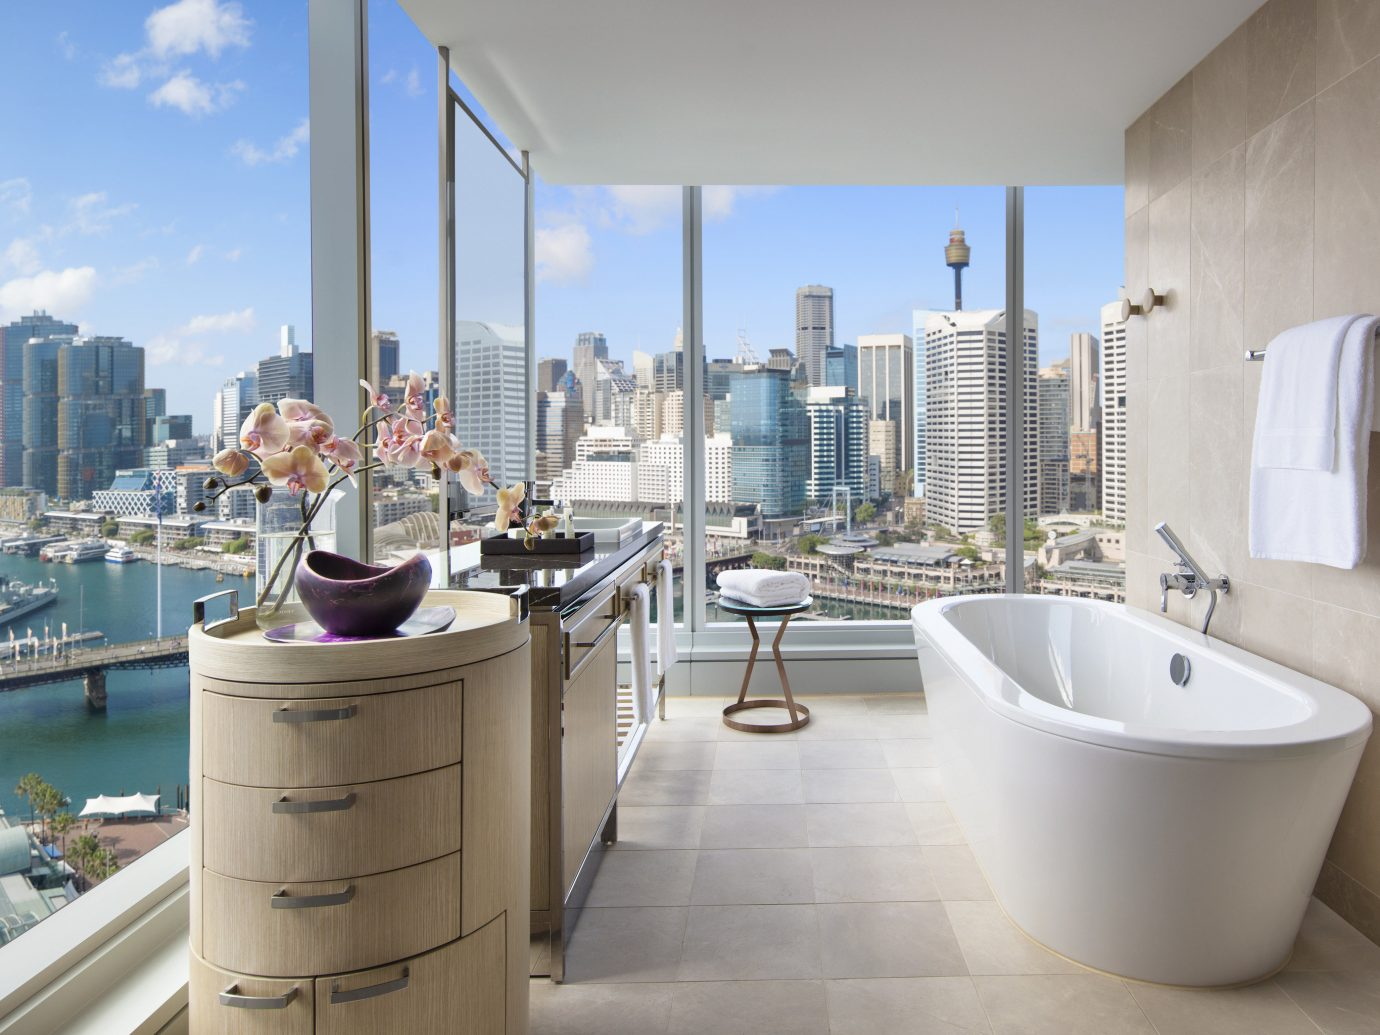 Trip Ideas room bathroom interior design real estate apartment window condominium